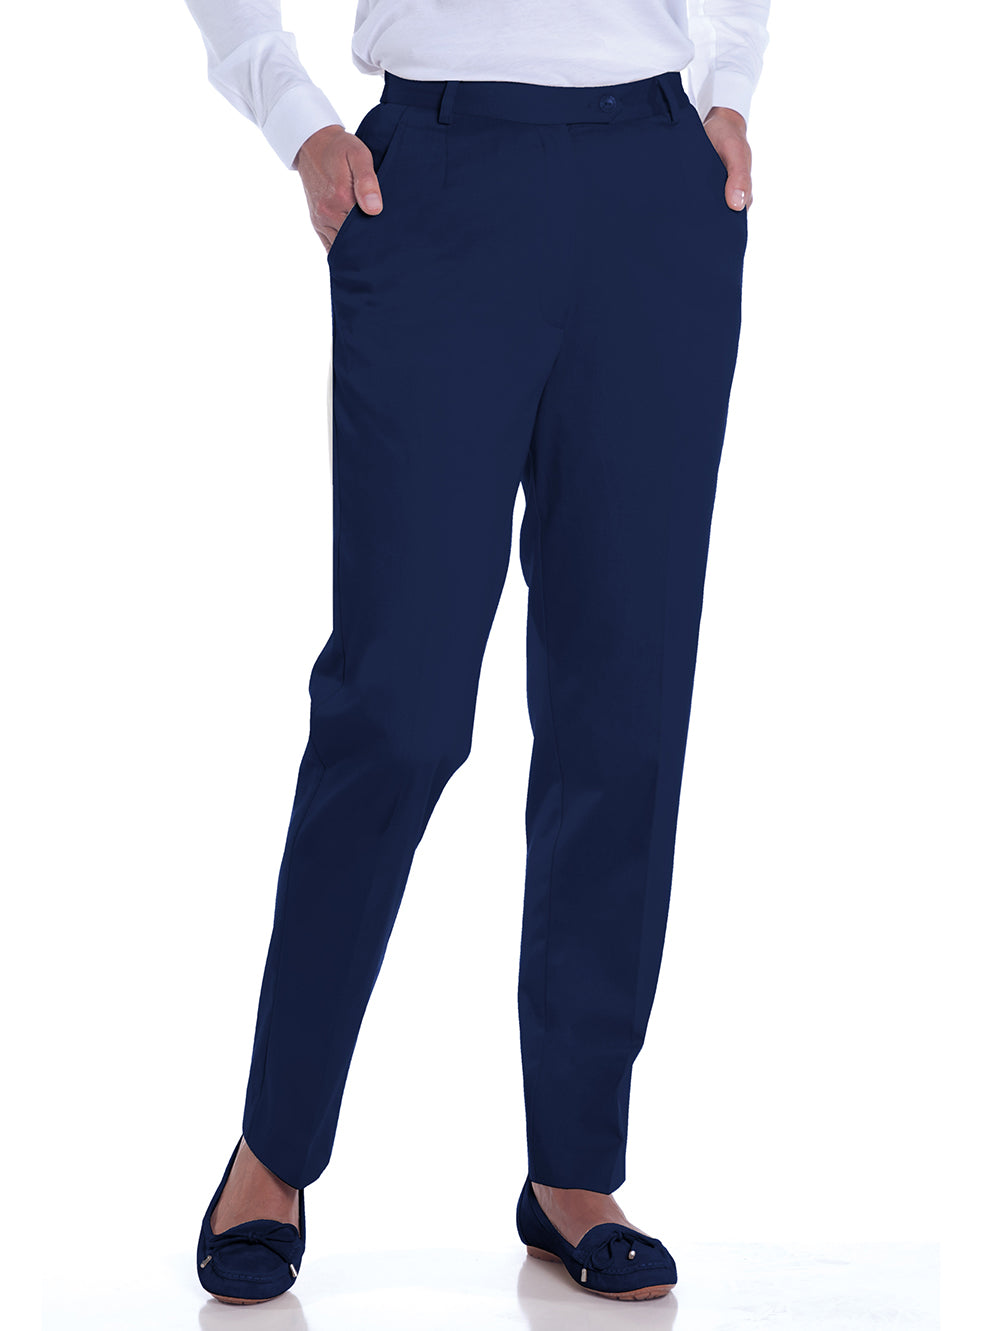 Stretch Twill Flat Front Pants</br>Ink E76